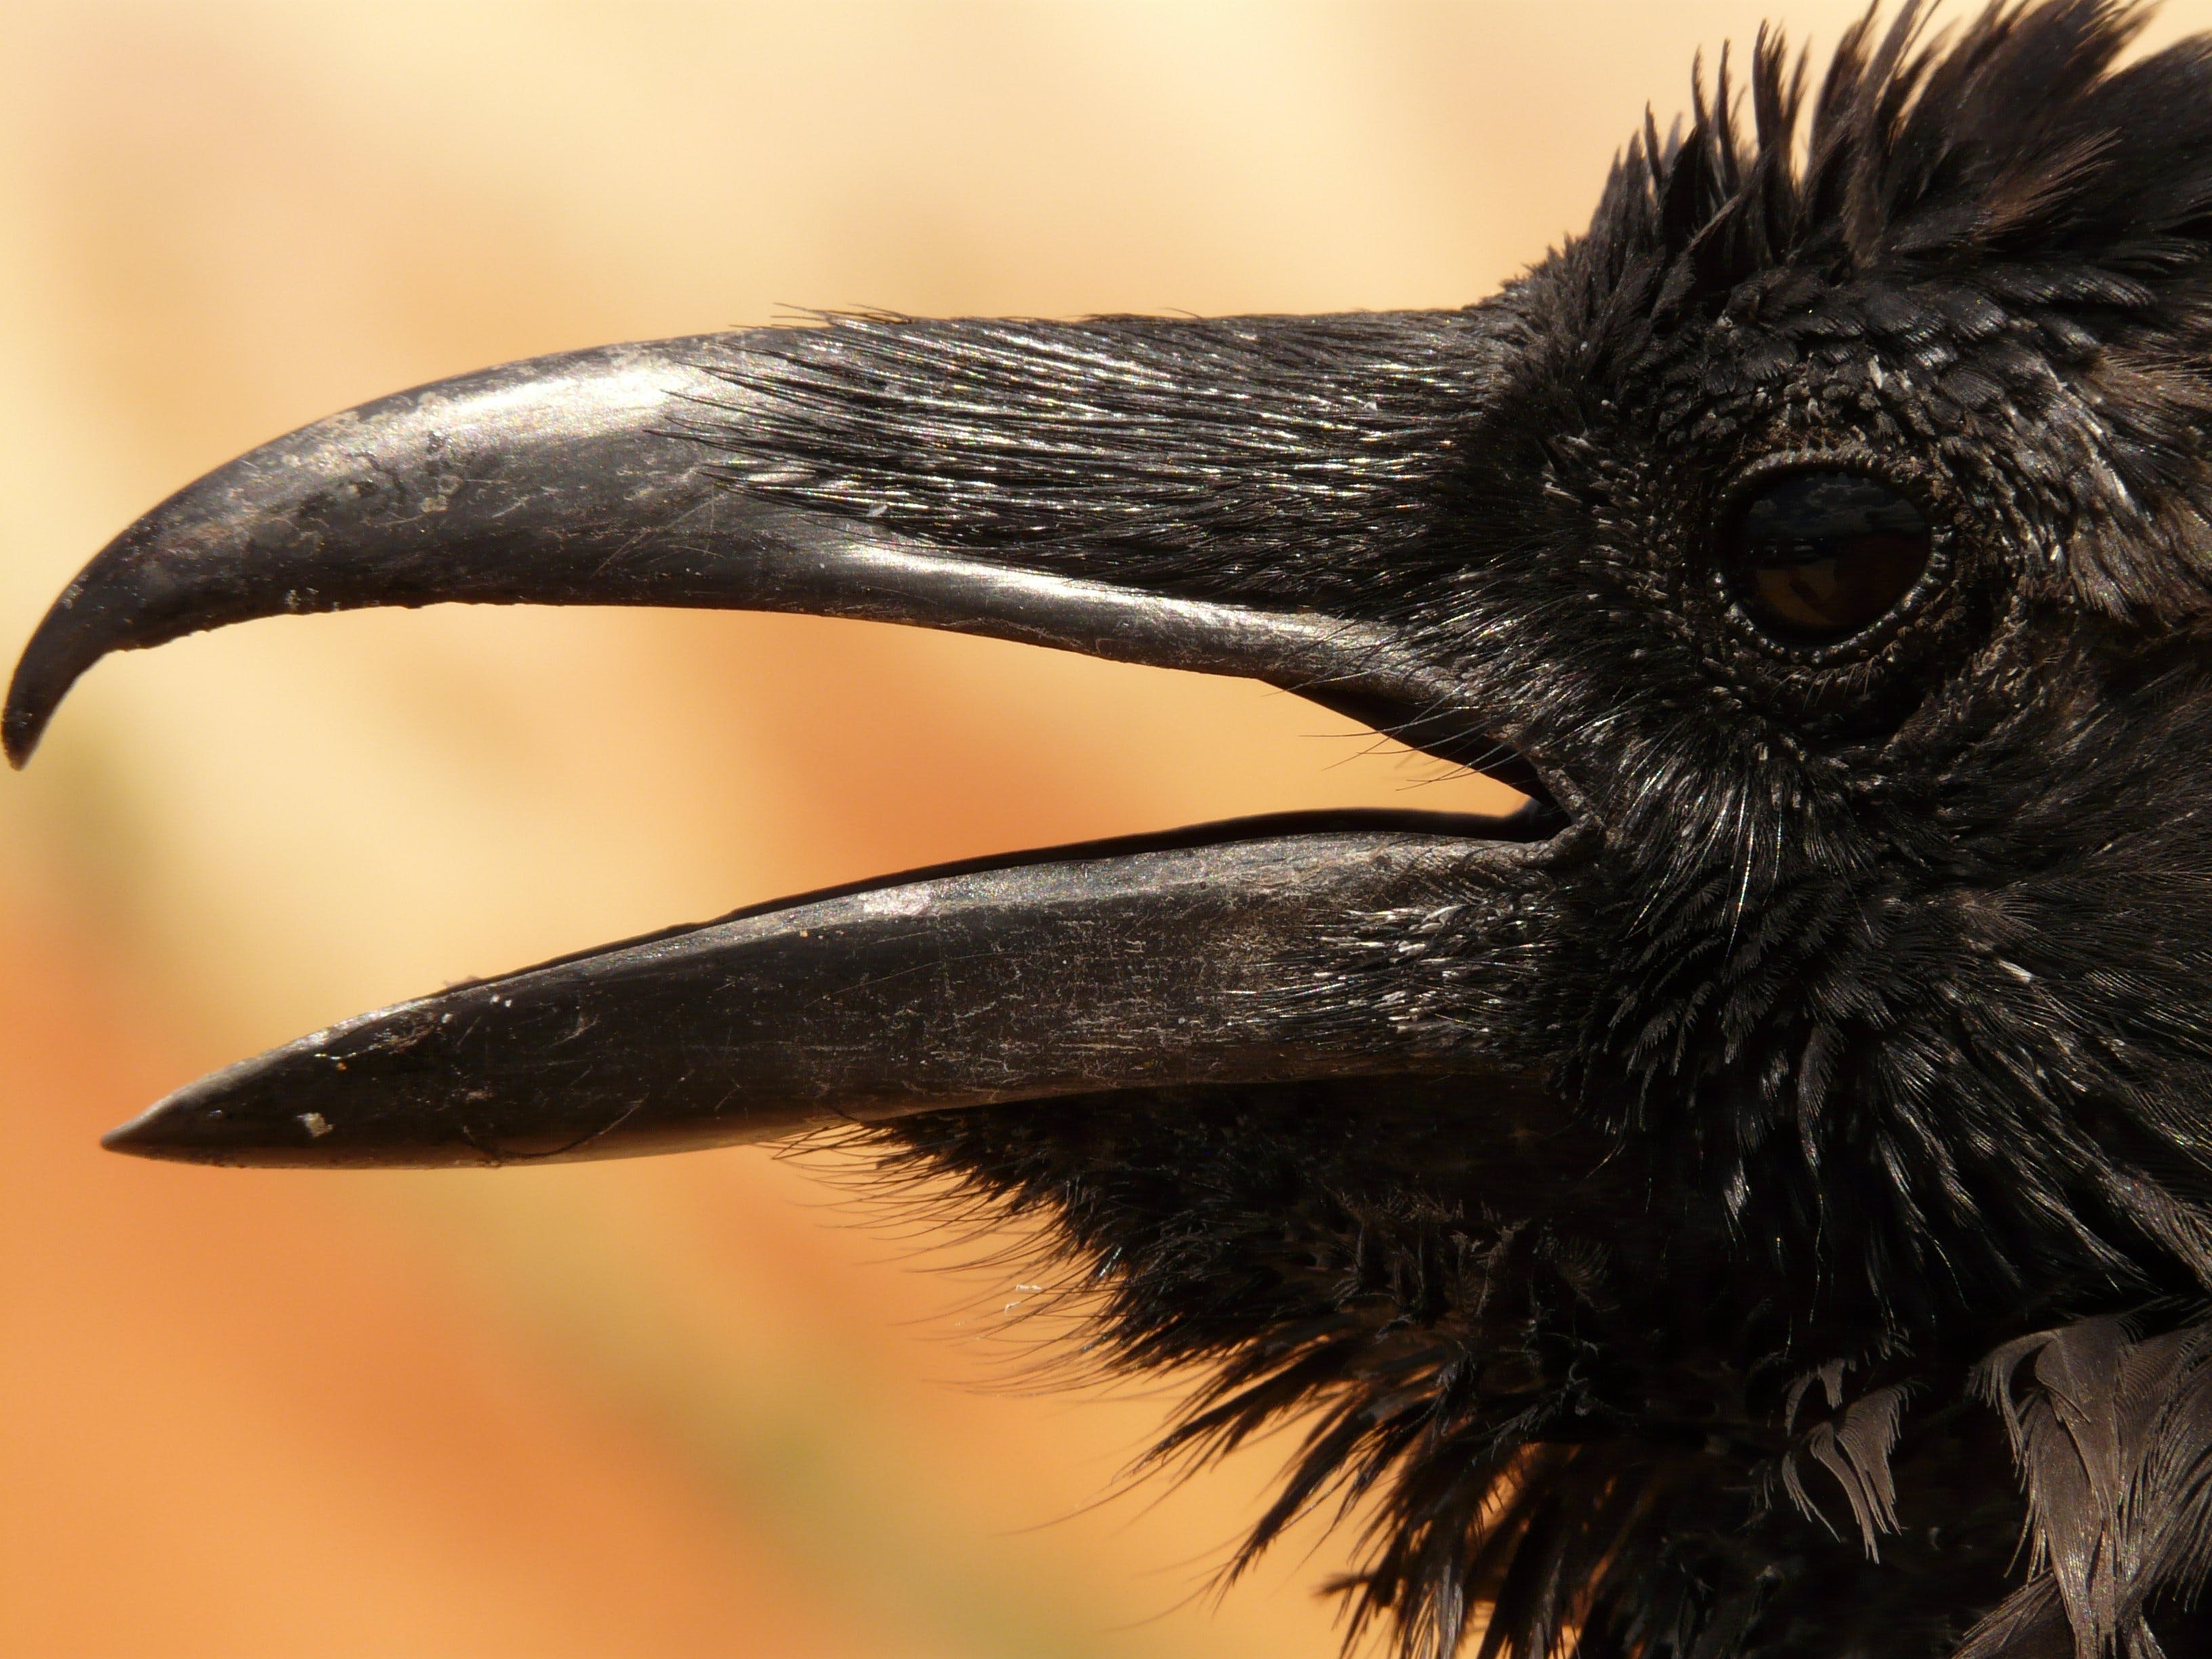 Black Crow in Macro Photgraphy